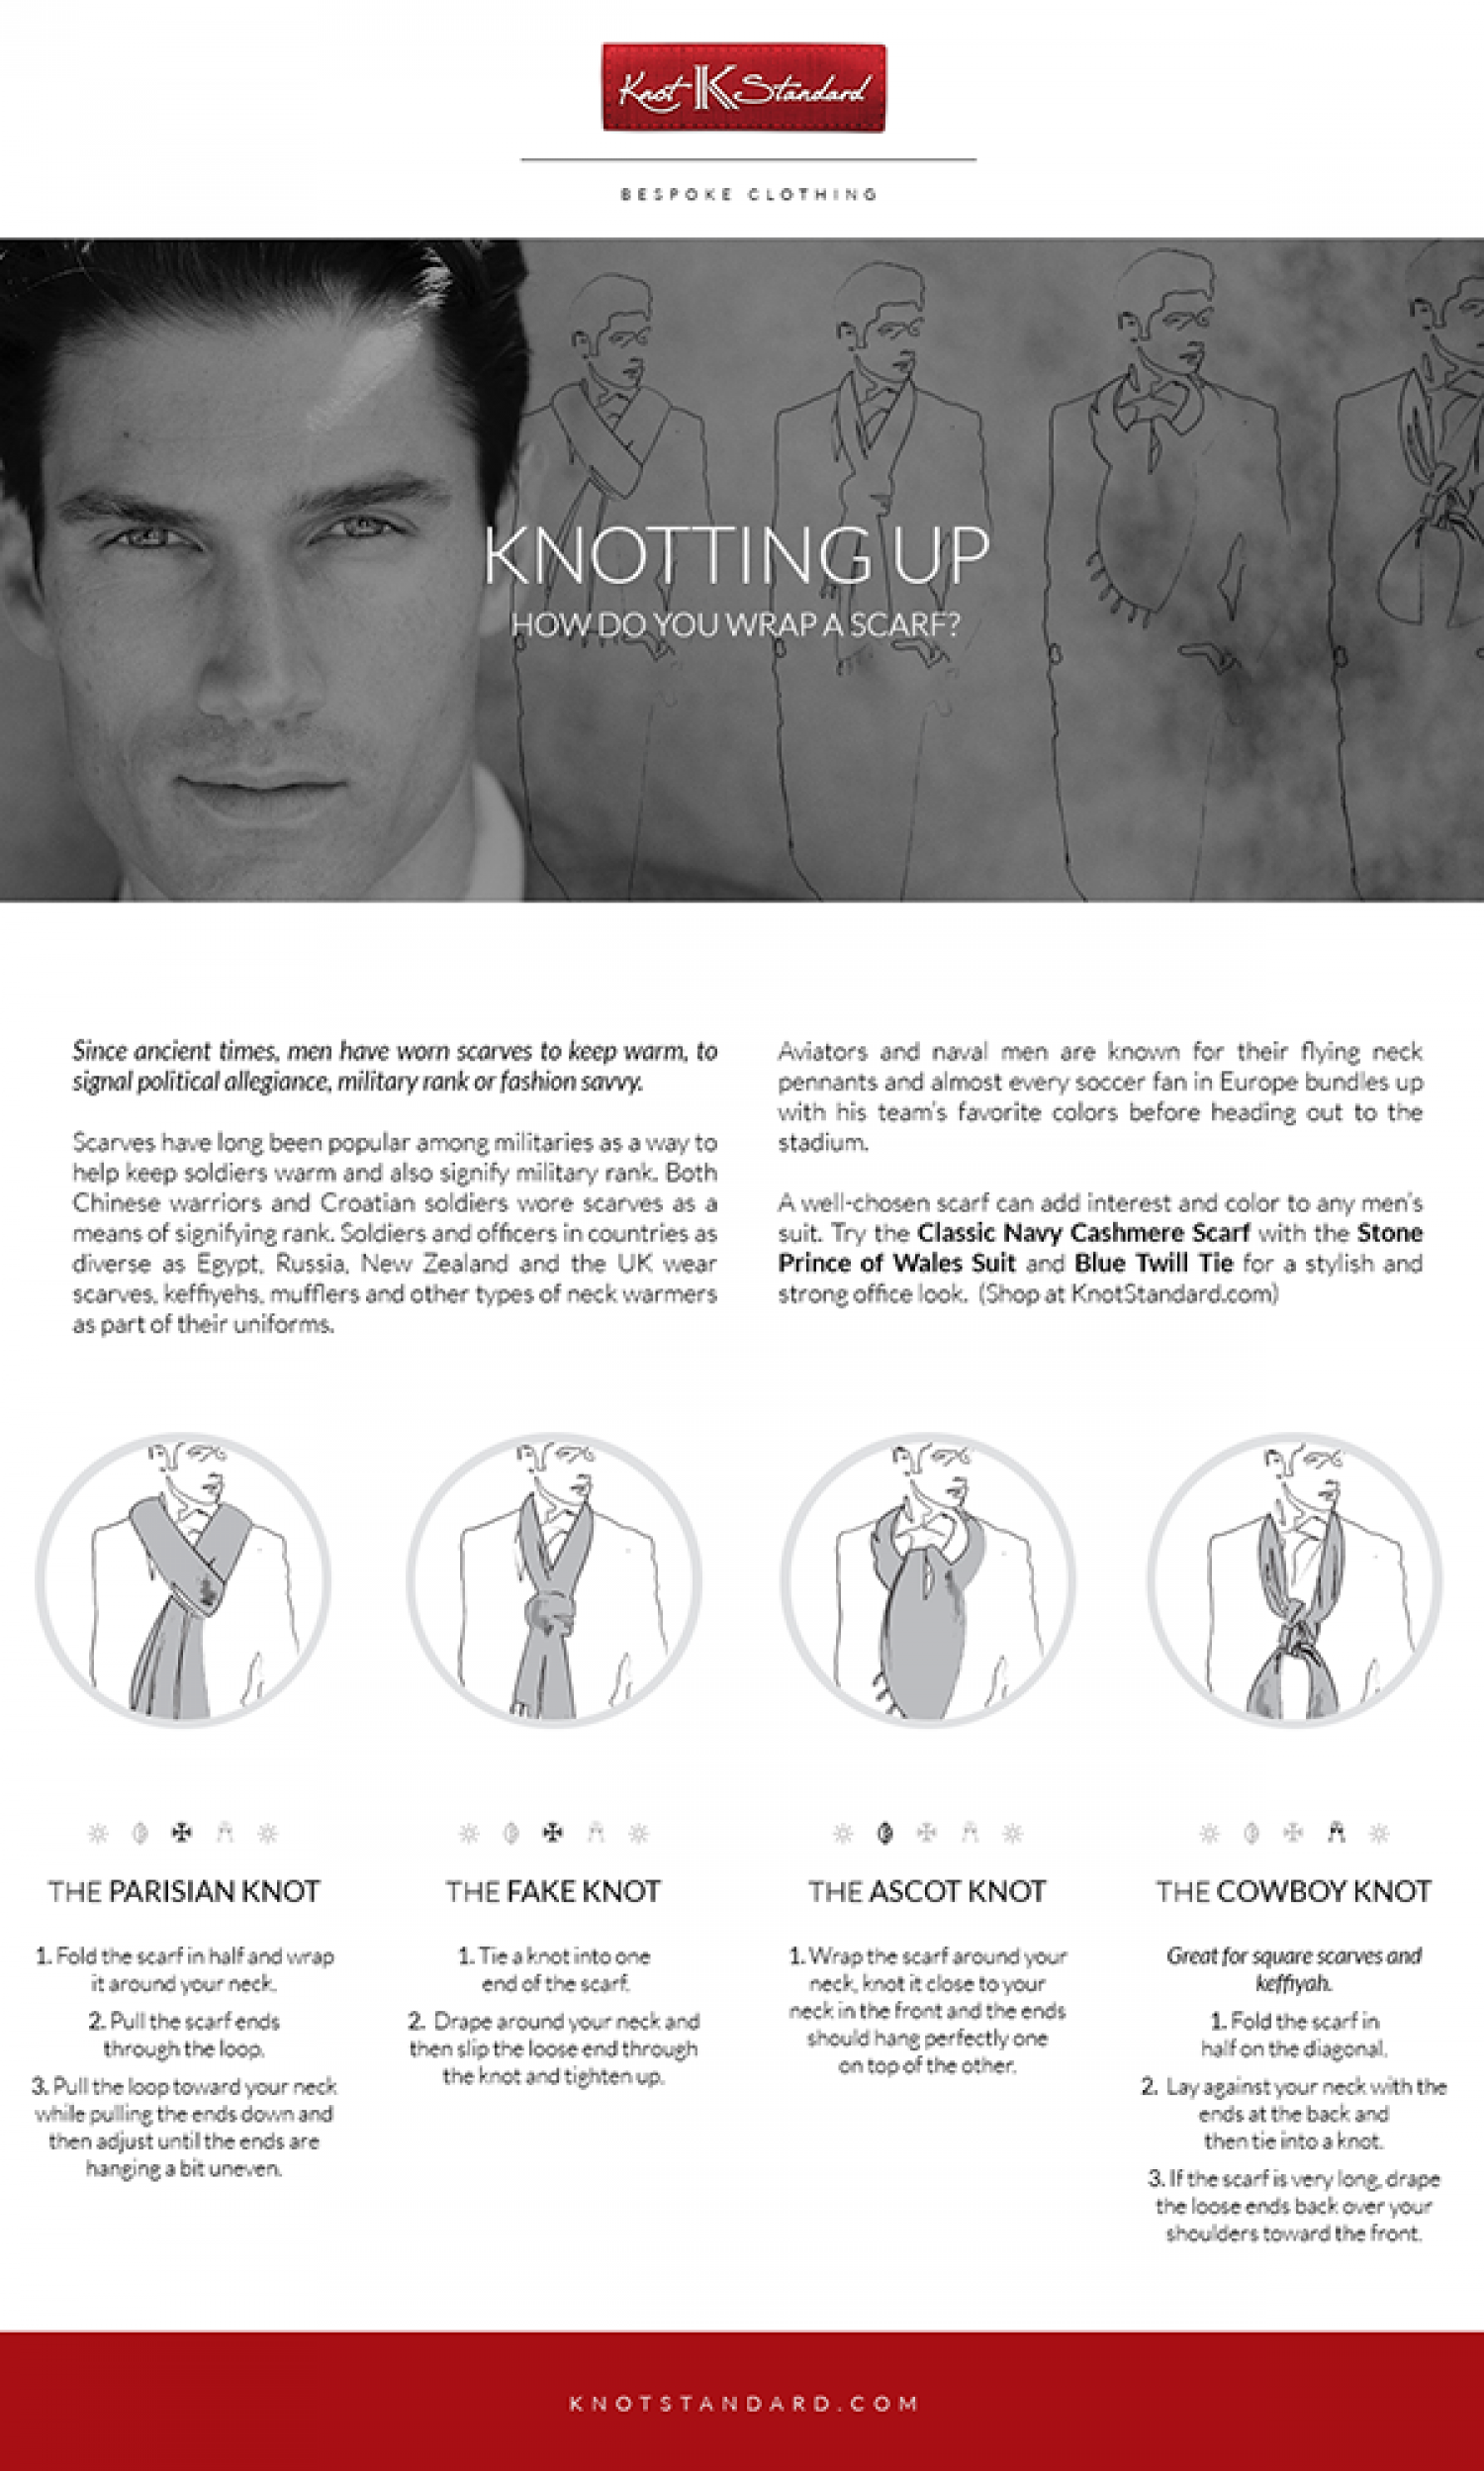 Knotting up – How do you Wrap a Scarf? Infographic